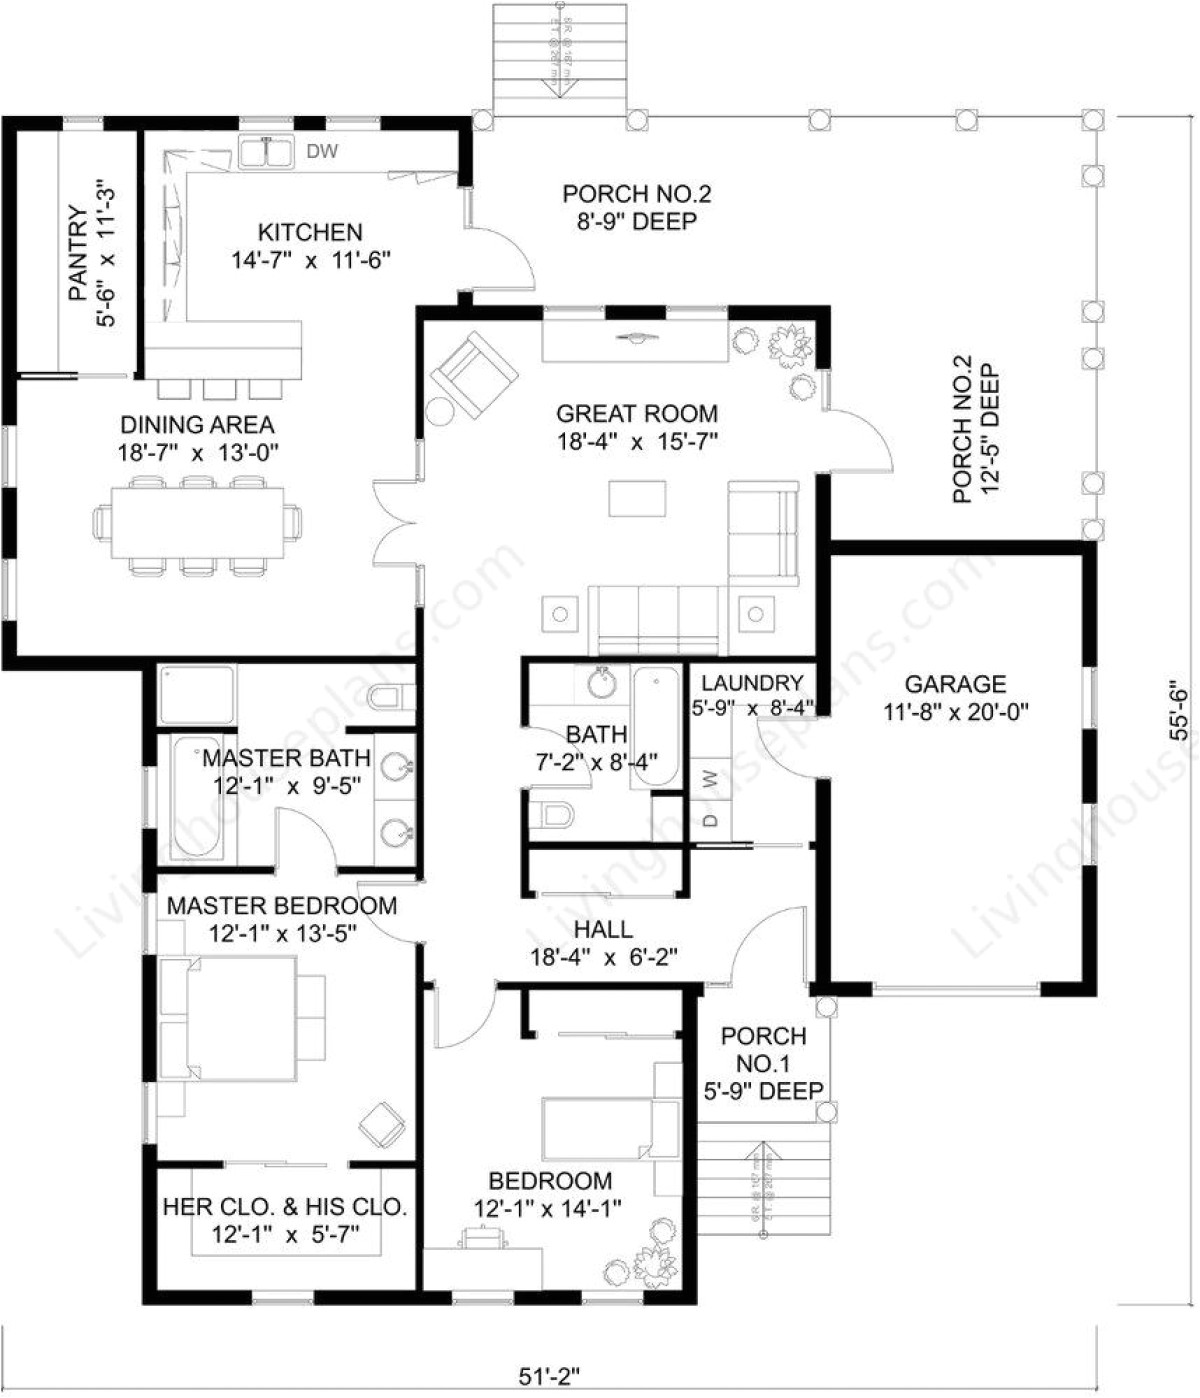 New Construction Home Plans Plans for Building A Home Container House Design